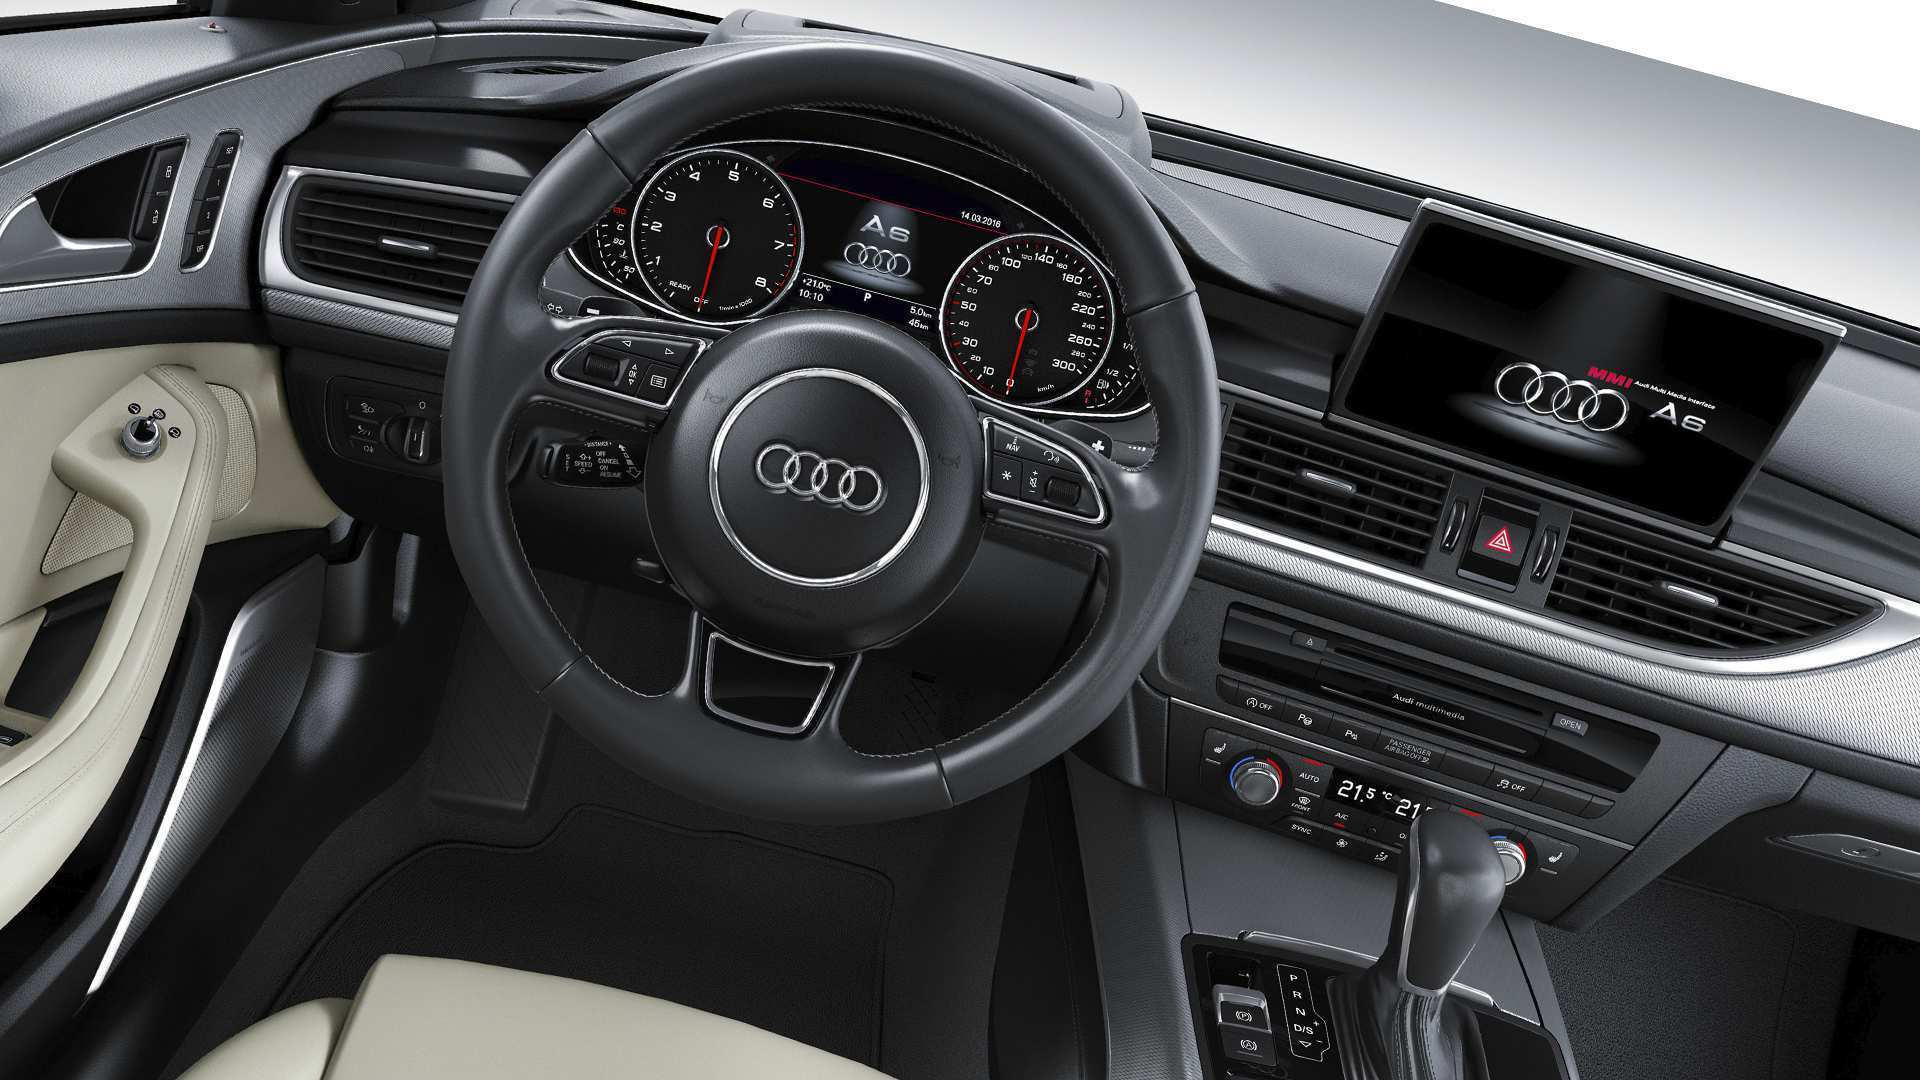 32 New Review Audi 2019 A6 New Interior Price with Review Audi 2019 A6 New Interior